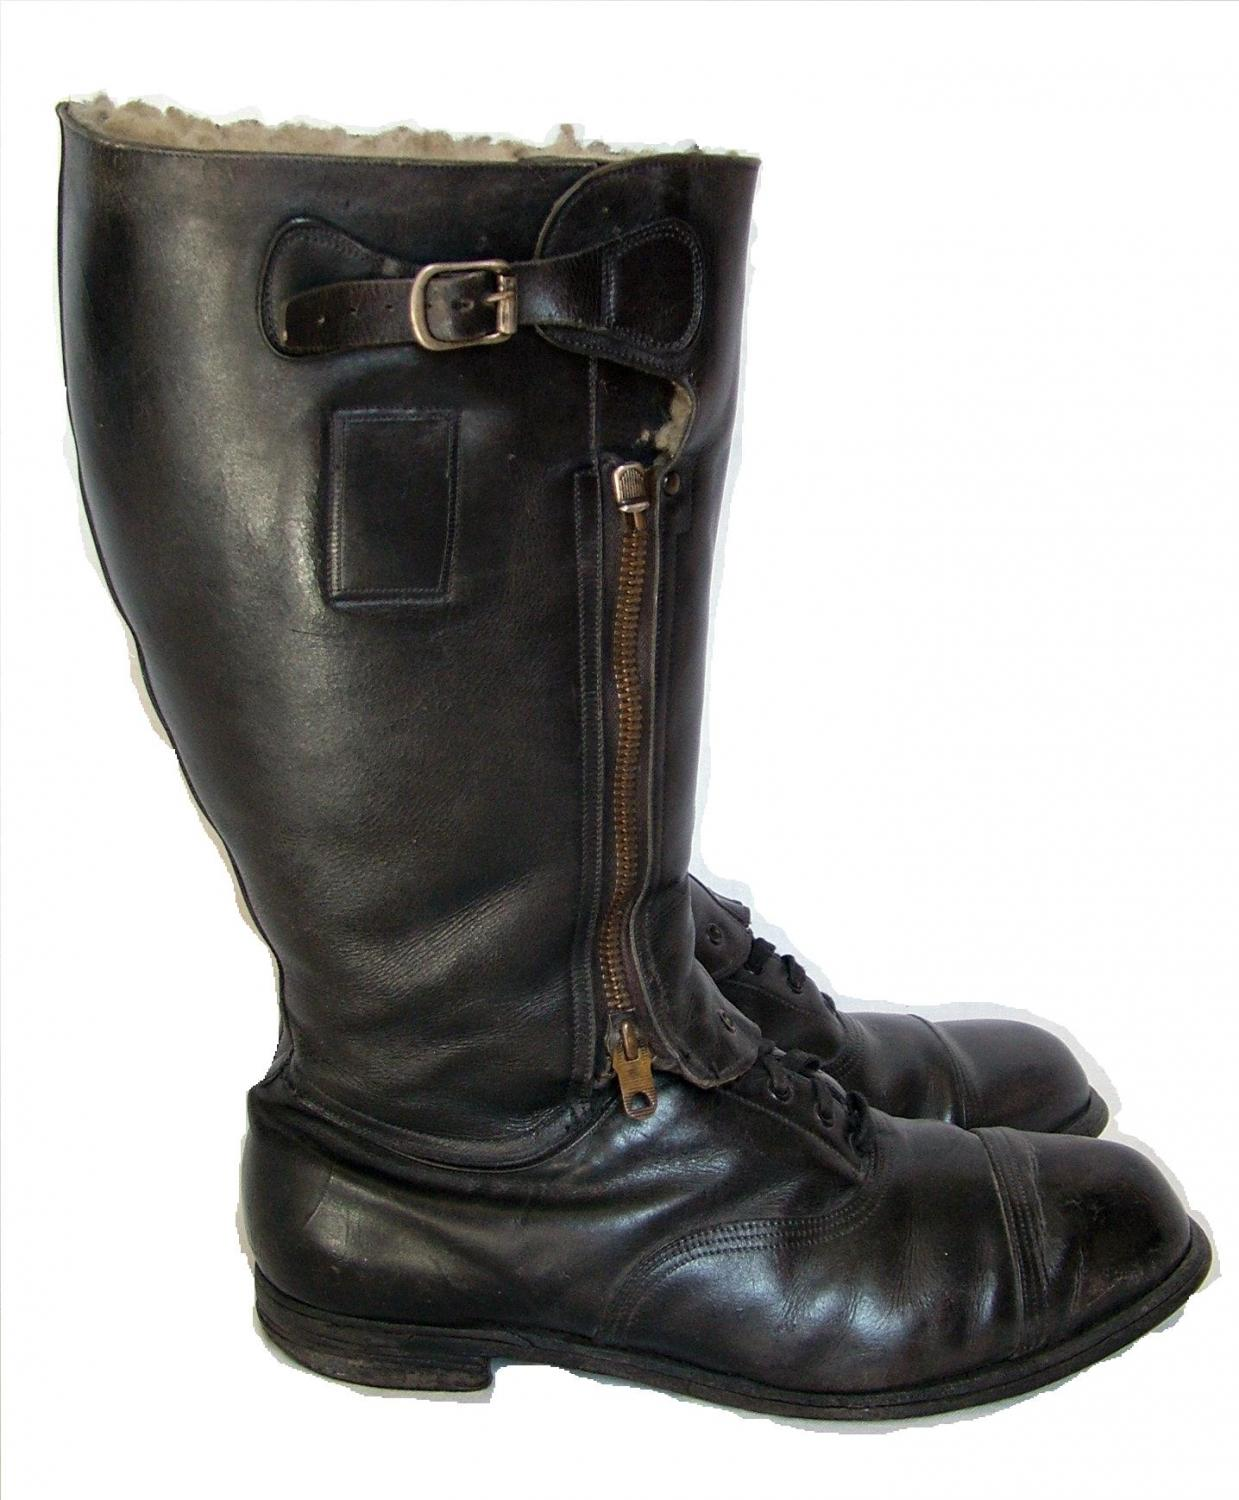 RAF Nuffield Pattern Escape Boots